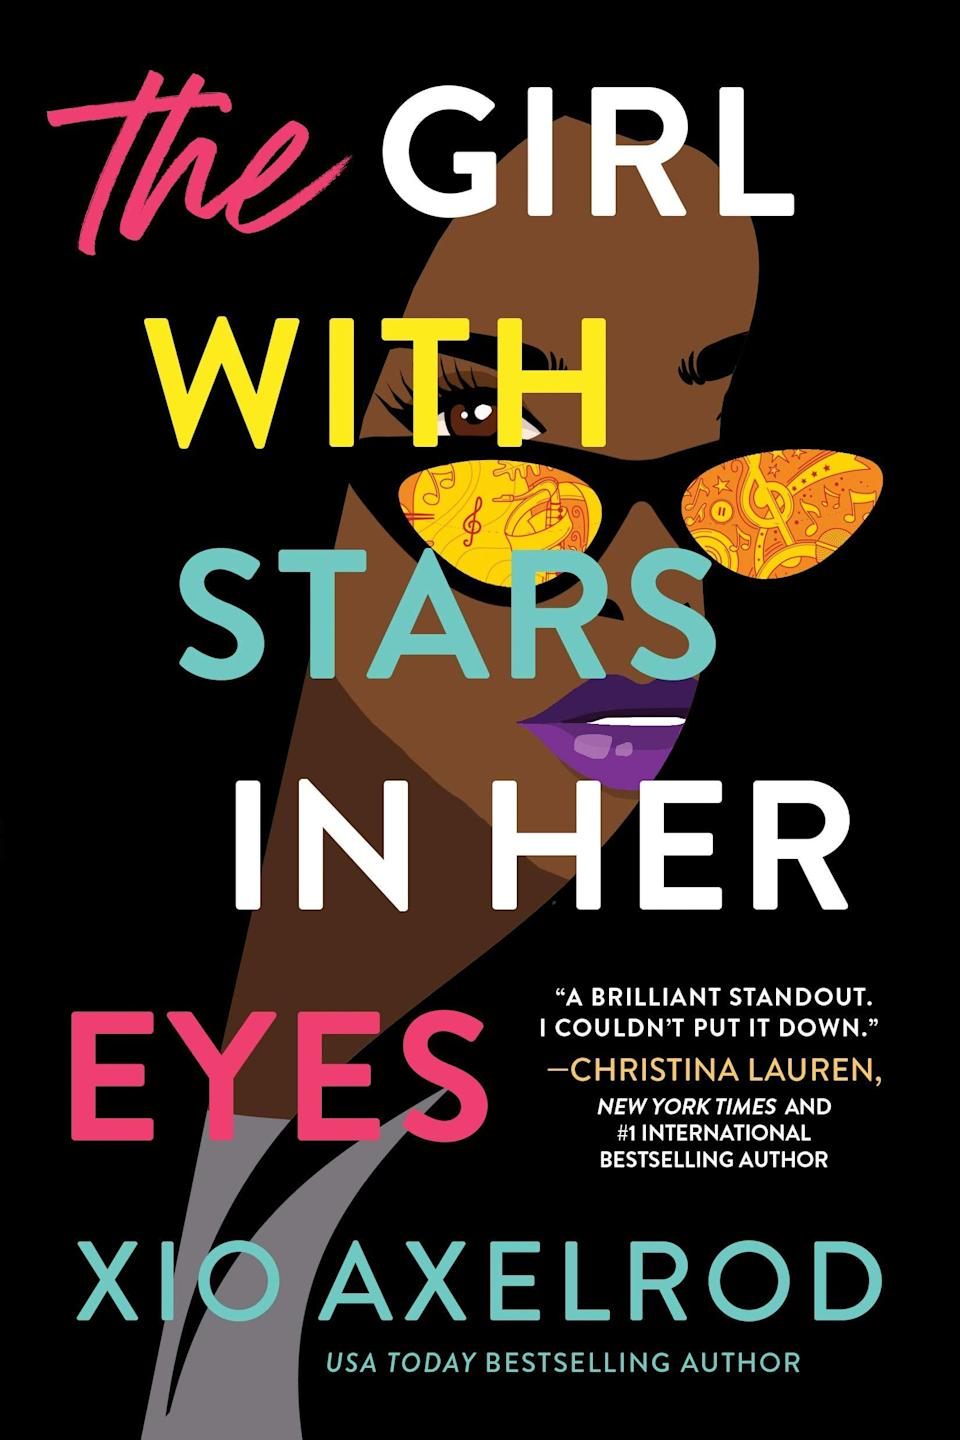 """<p><span><strong>The Girl With Stars in Her Eyes</strong></span> by Xio Axelrod is a rock-and-roll romance that's just begging you to slip it in your beach bag. Antonia """"Toni"""" Bennette is a guitarist on the verge of her big break. All she needs to do is join the up-and-coming band The Lillys, and all of her career dreams will come true. Unfortunately for Toni, The Lillys' new manager also happens to be her small-town ex who left her without looking back. </p> <p><em>Out May 4</em></p>"""